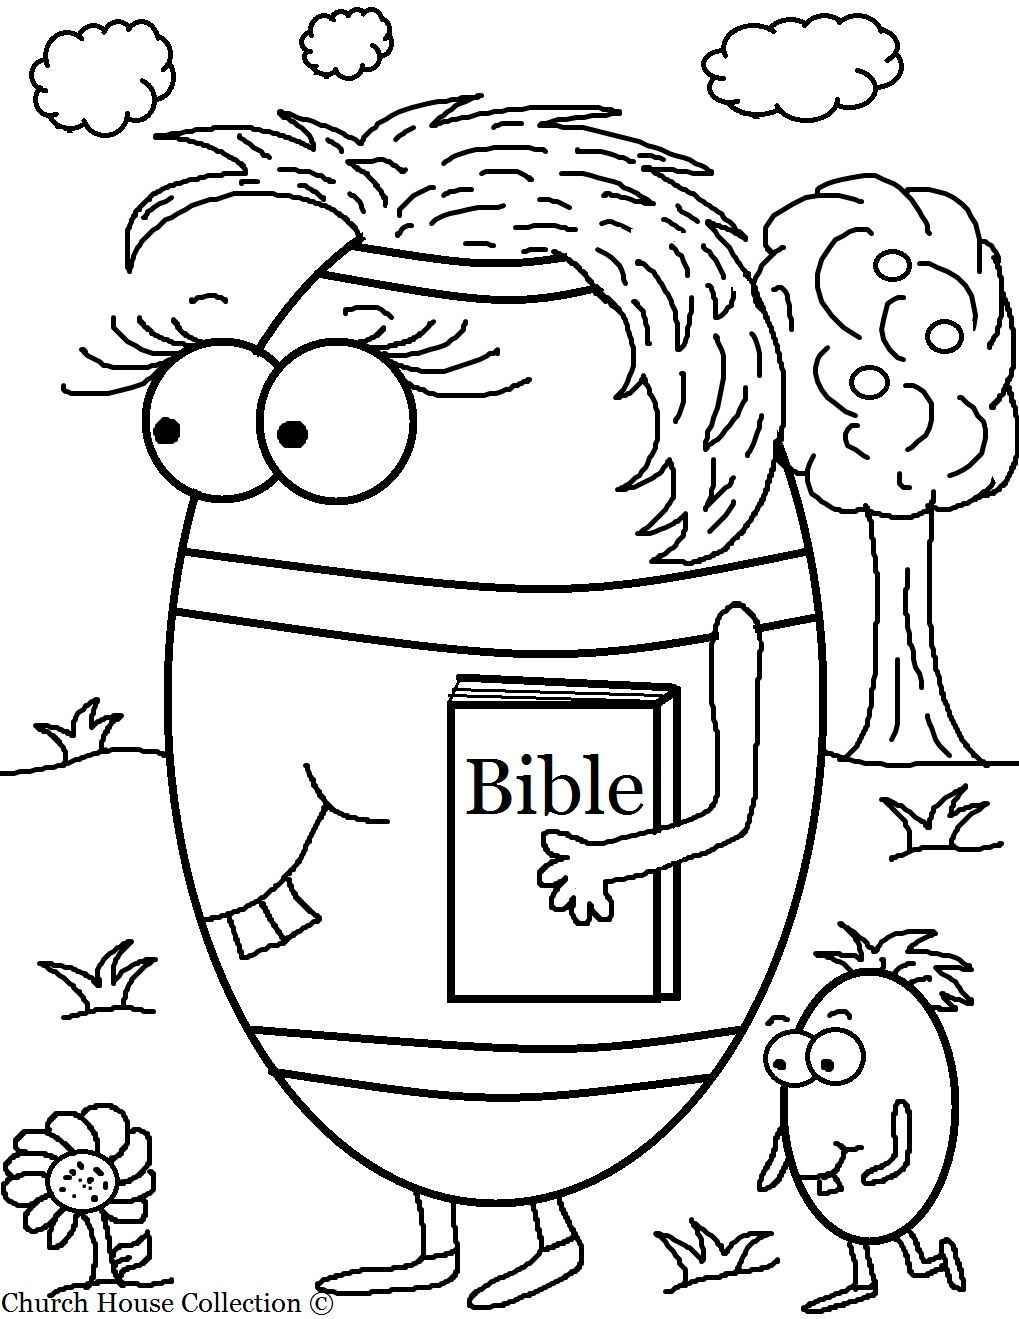 Free Easter Egg Carrying Her Bible Coloring Page For